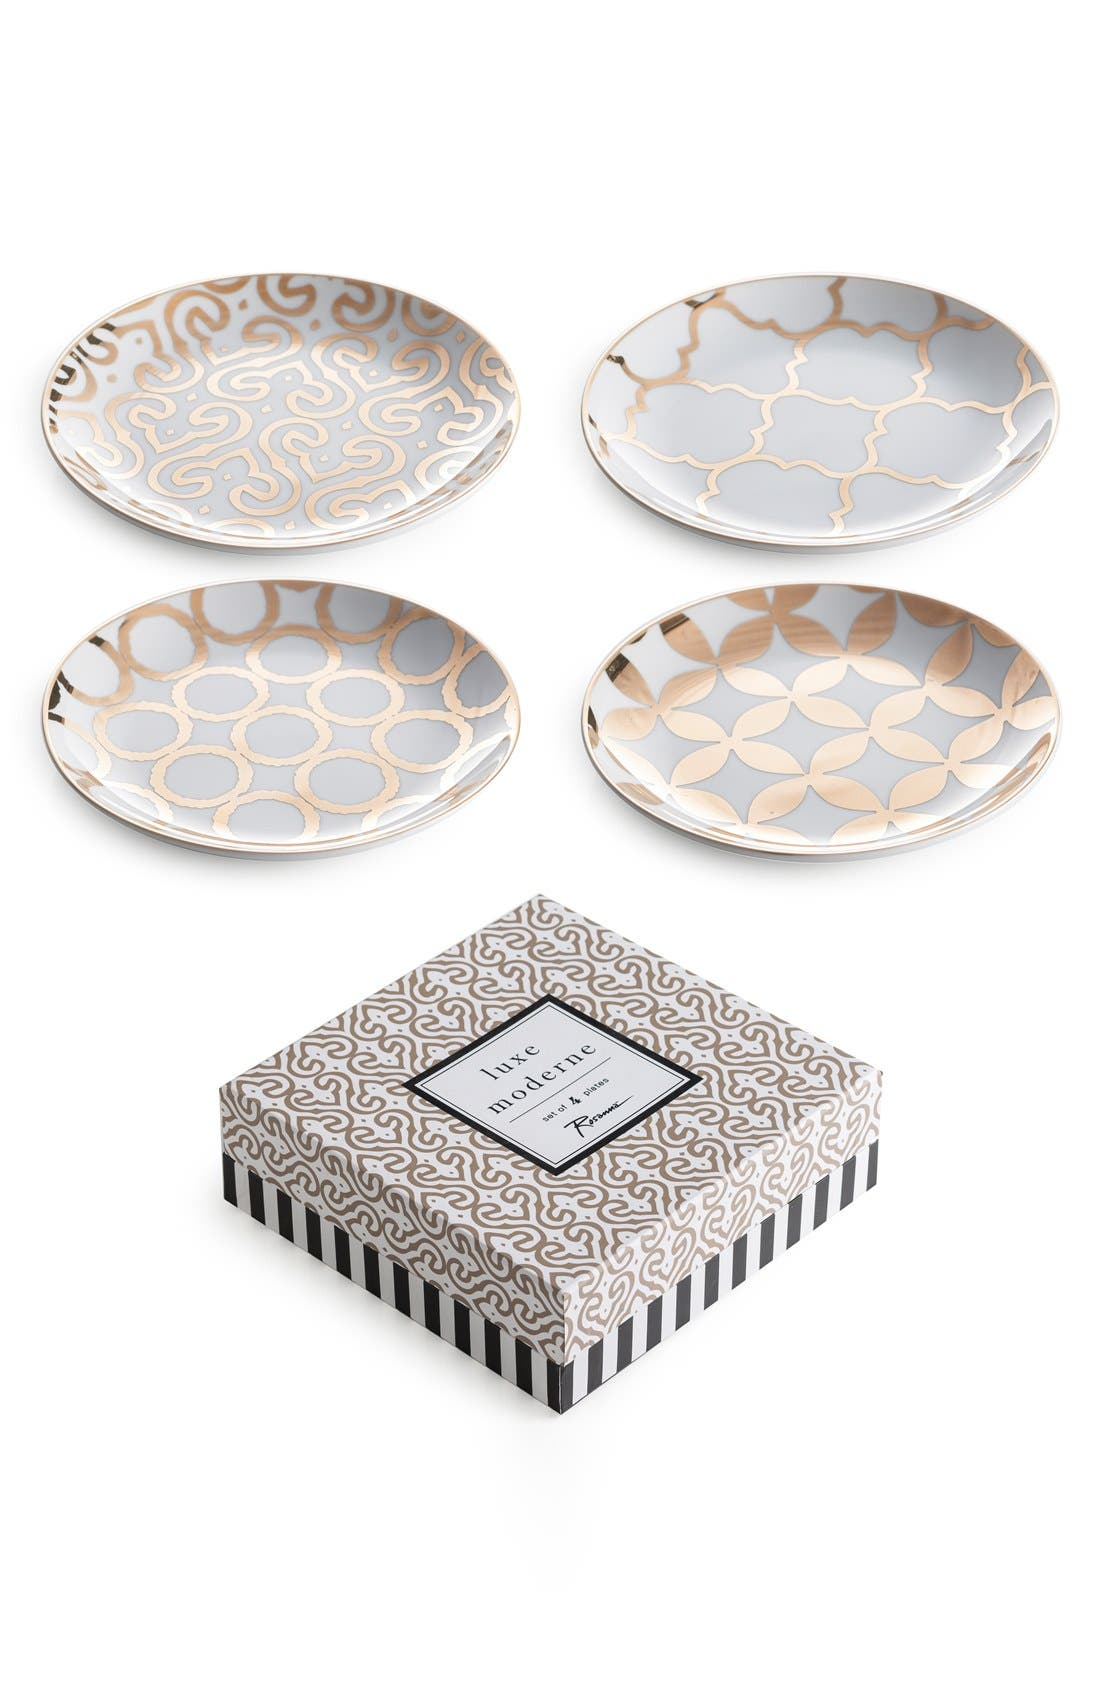 Main Image - Rosanna 'Luxe Moderne' Appetizer Plates (Set of 4)